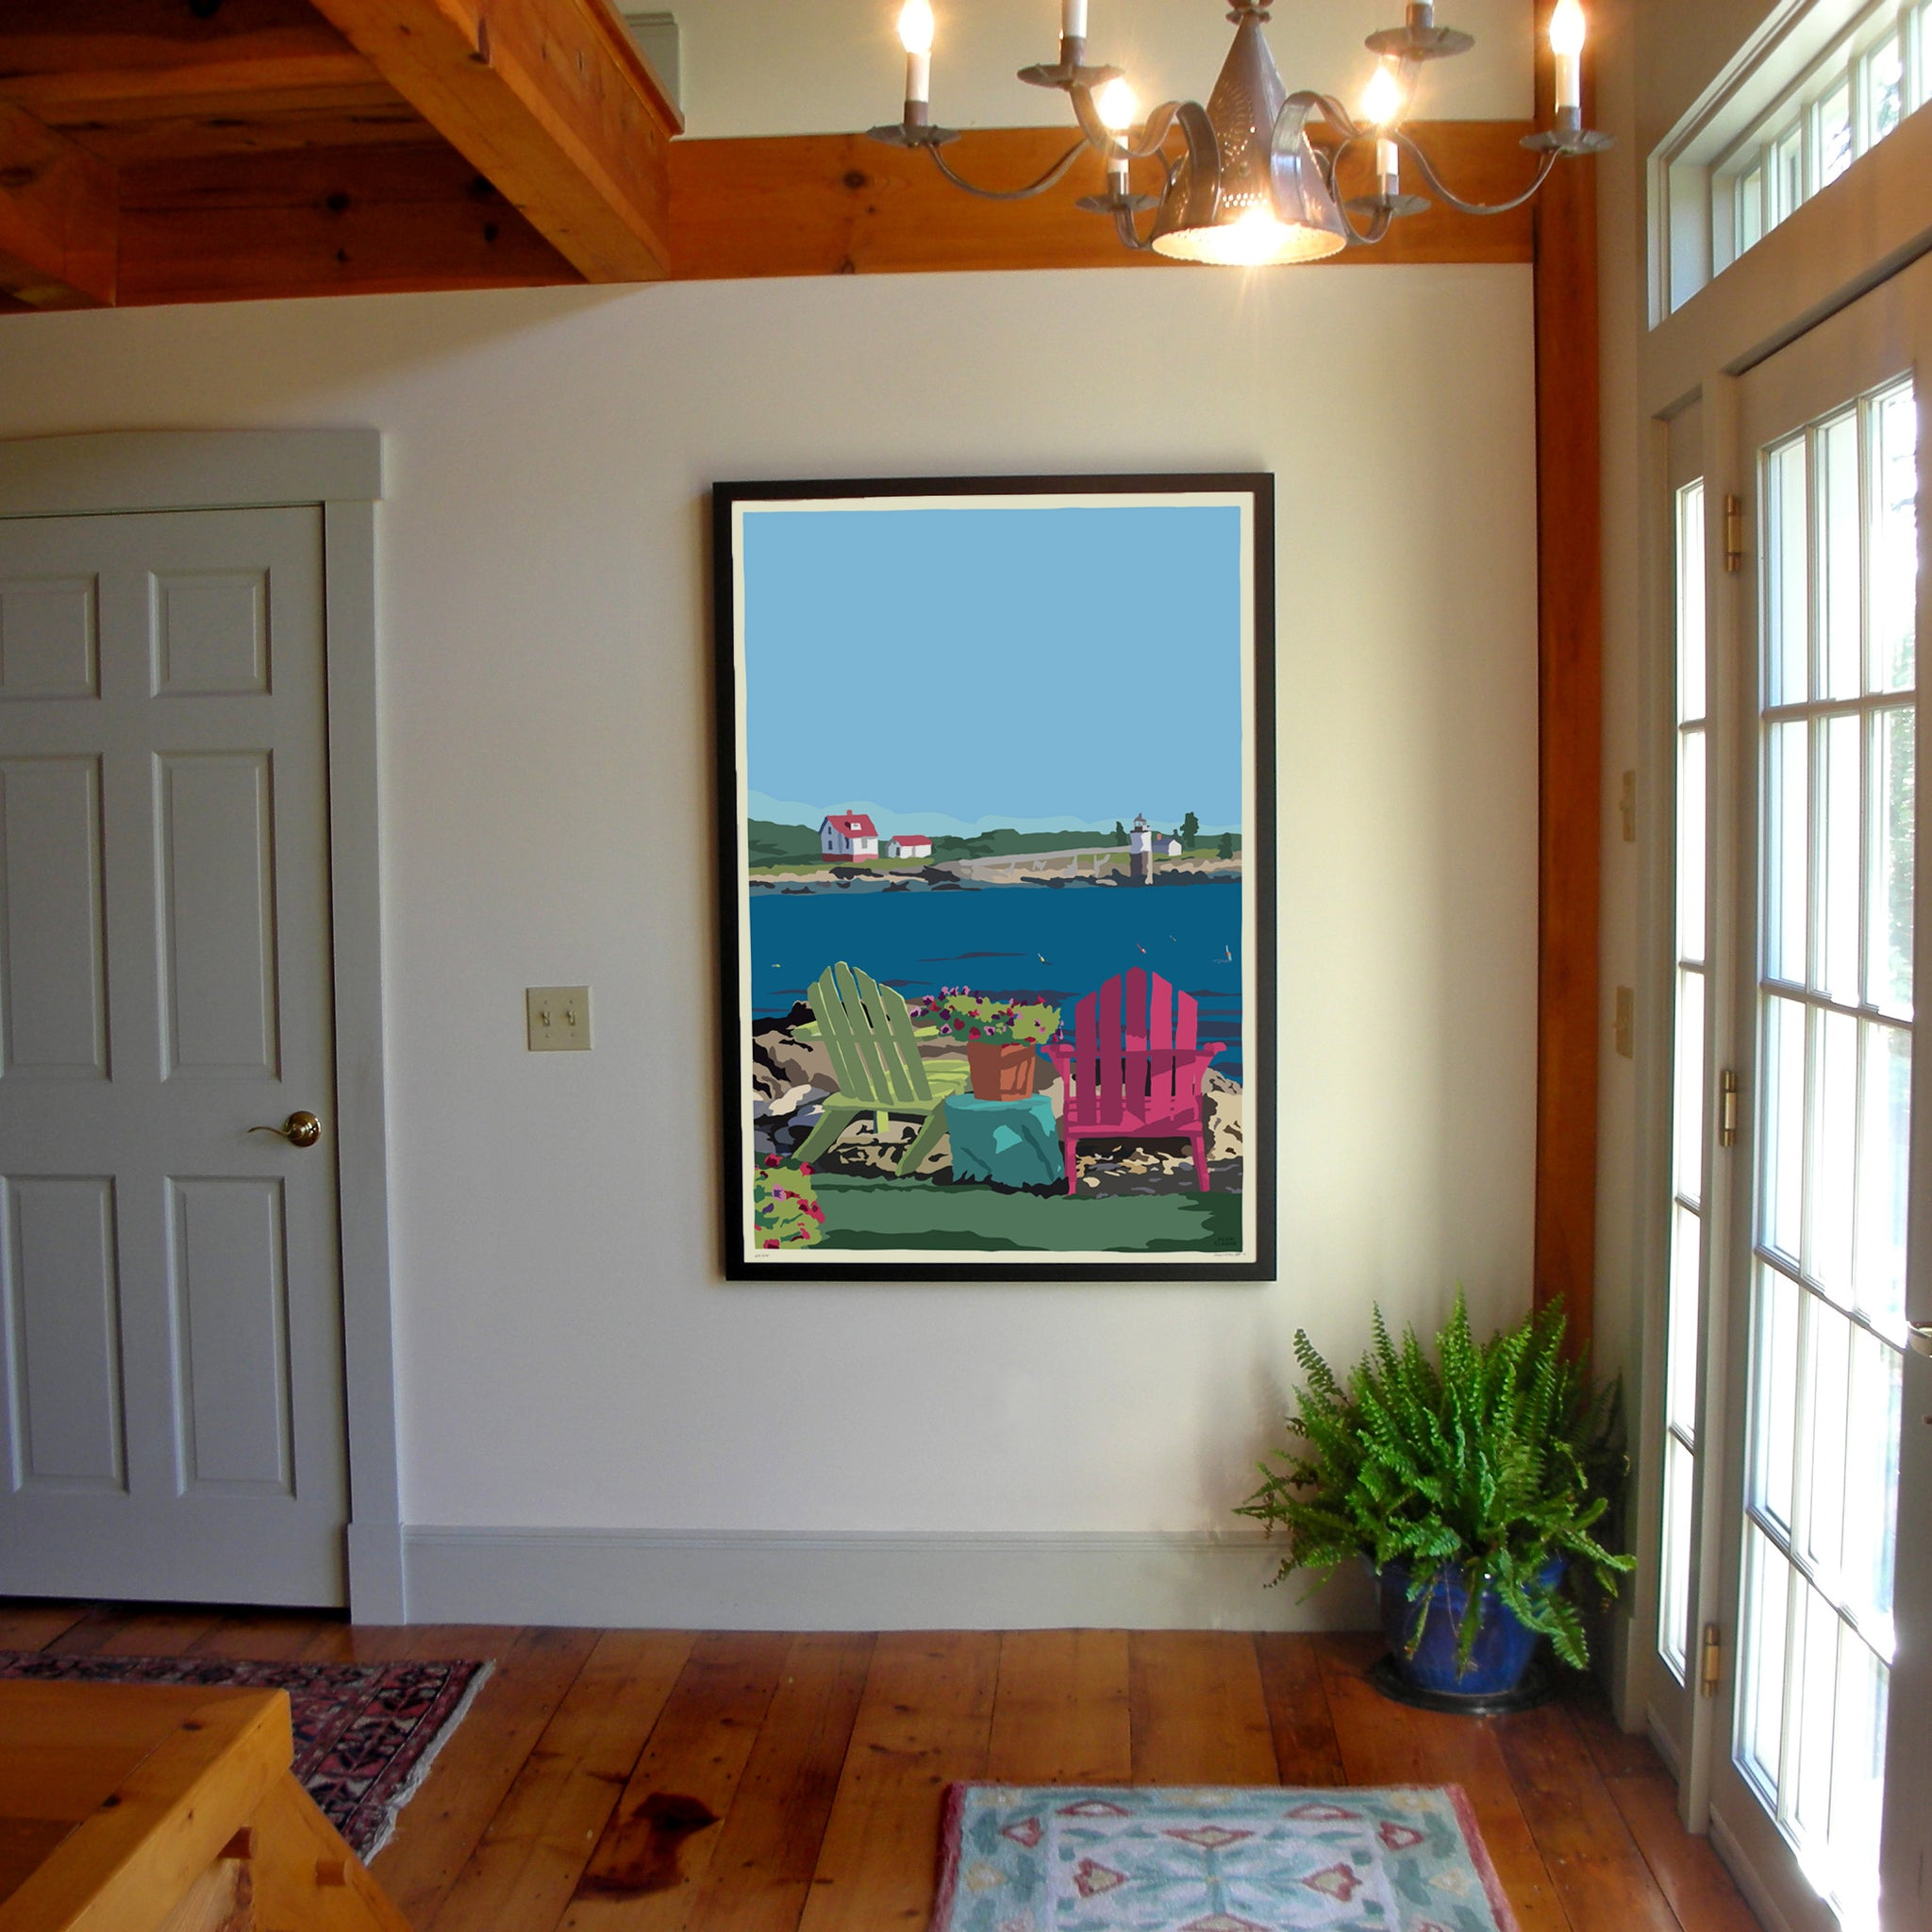 "Chairs Overlooking Ram Island Art Print 36"" x 53"" Framed Wall Poster - Maine"